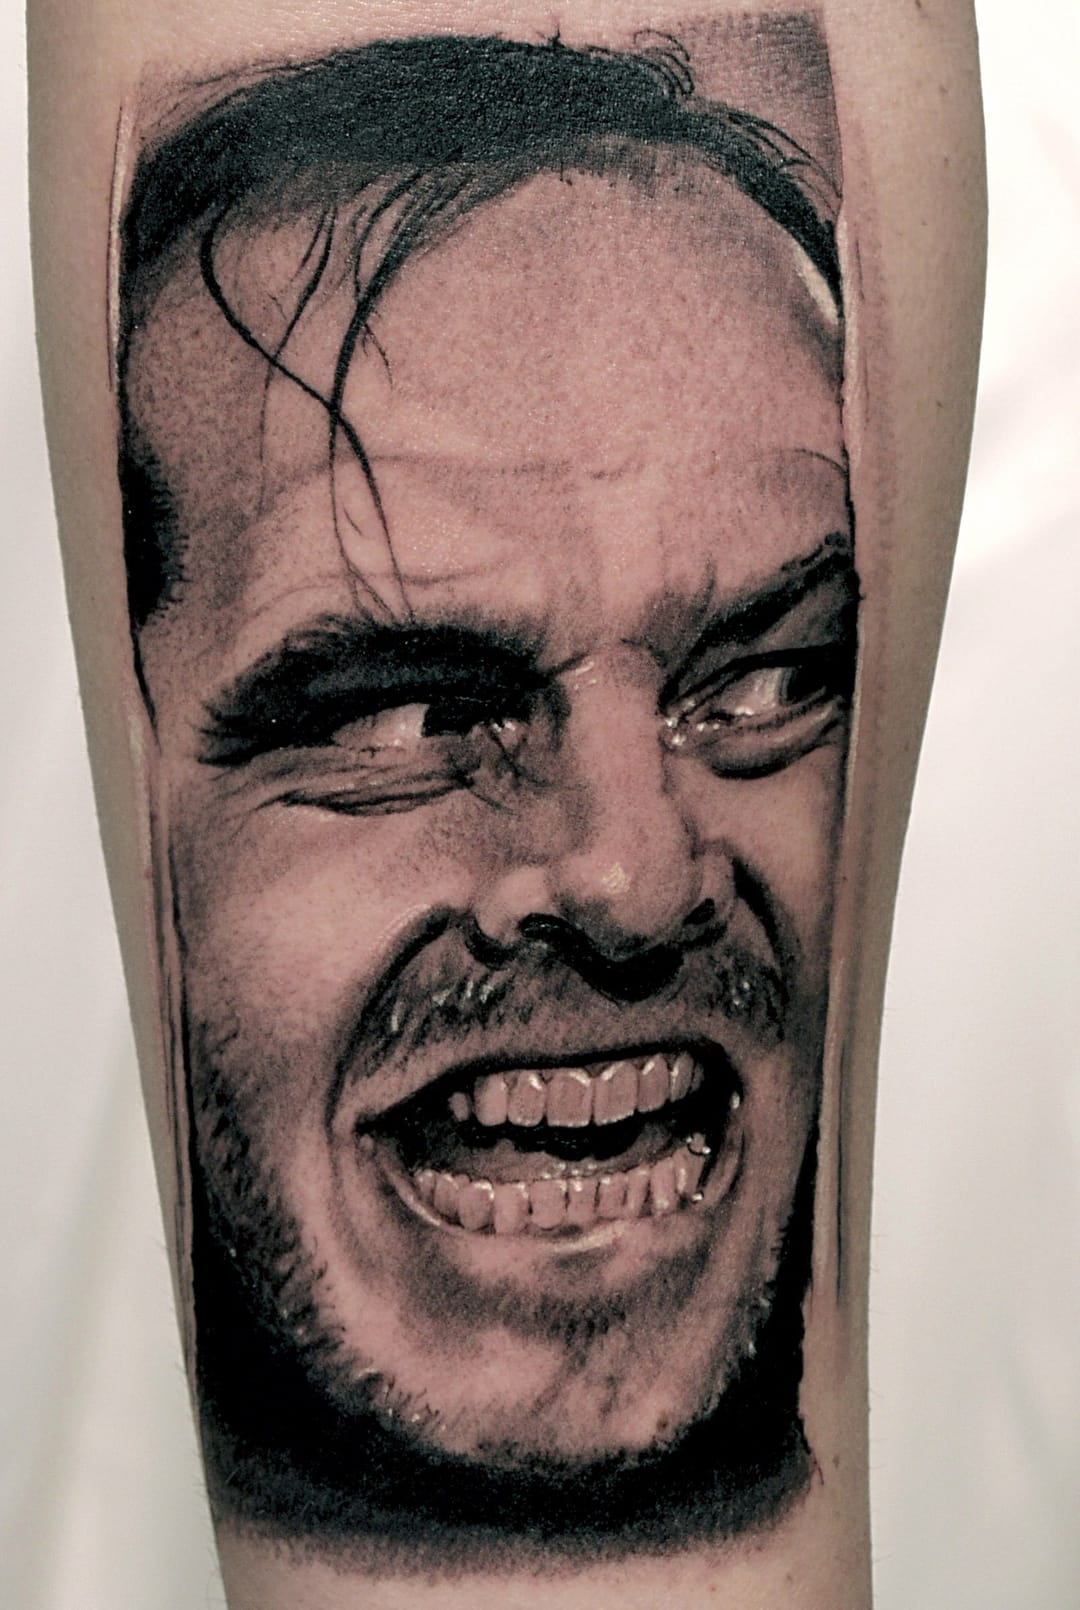 Any The Shining fans out there??